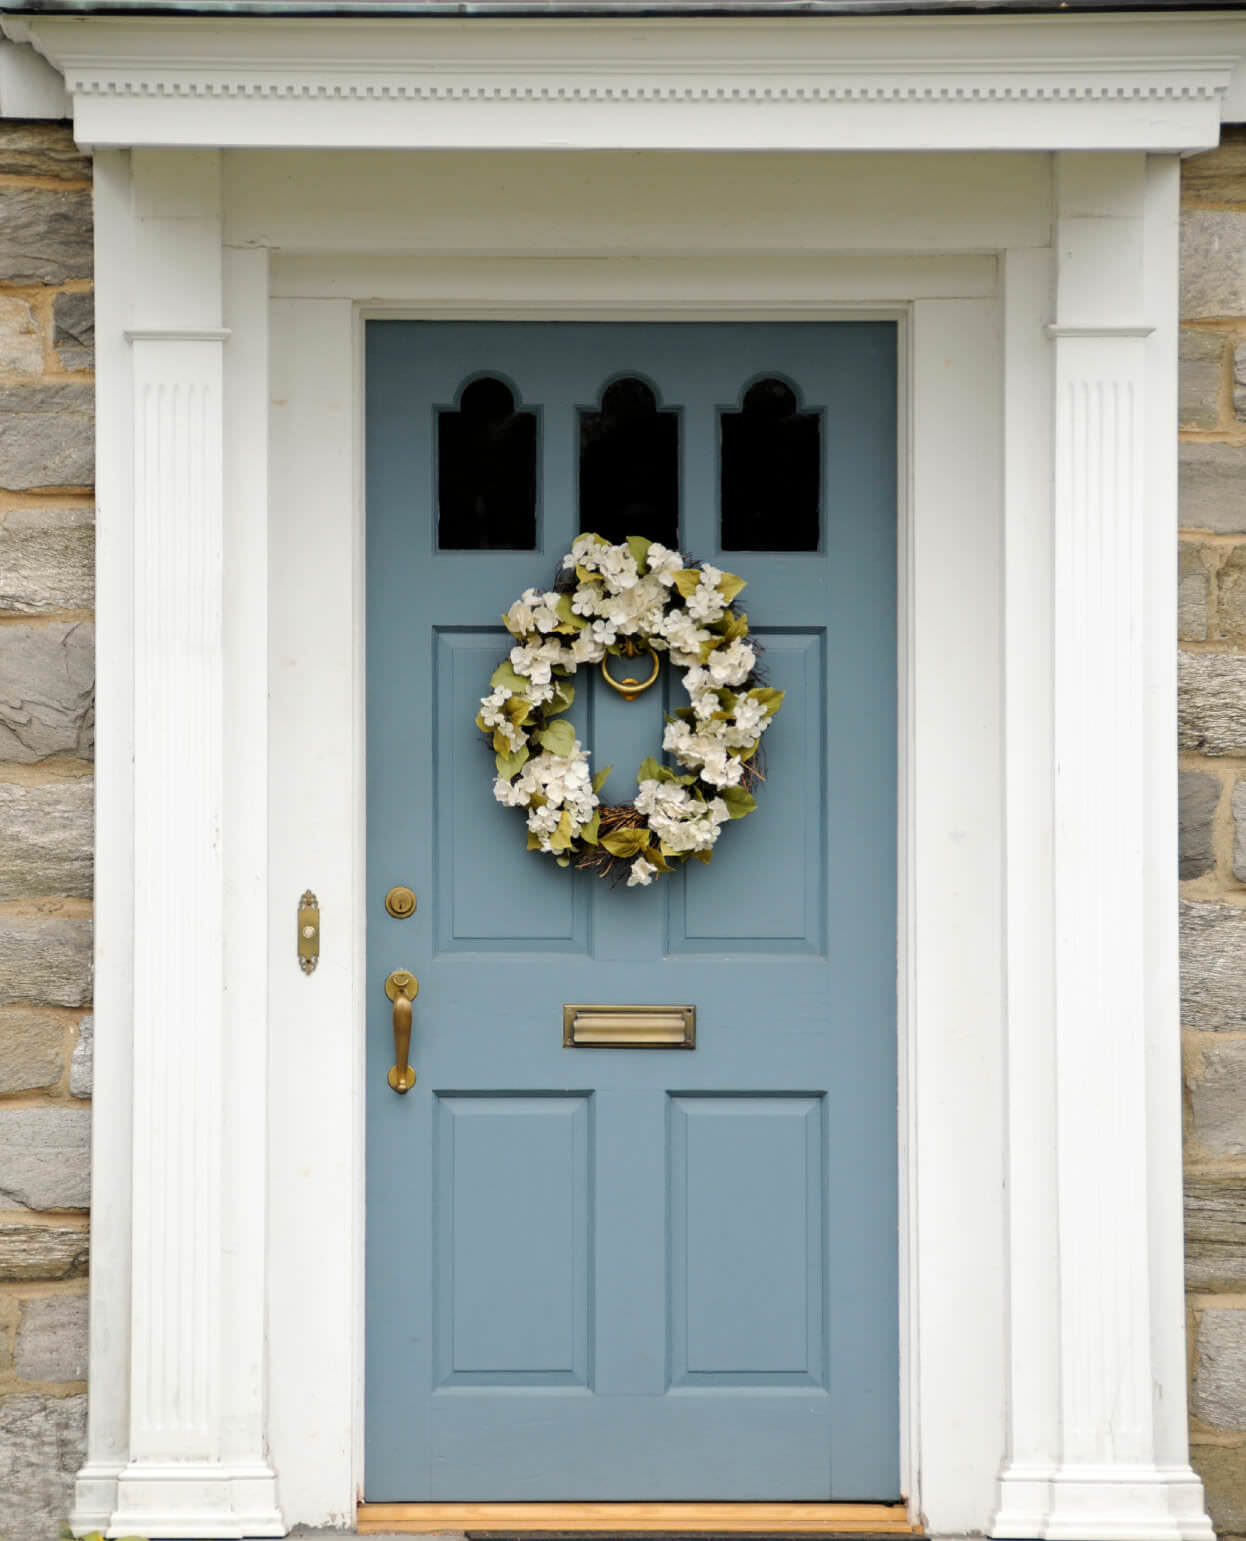 White portico against the stone brick walls framed this cool blue door adorned by a lovely floral wreath. It is completed with a brass handle and plate along with a ring knocker.